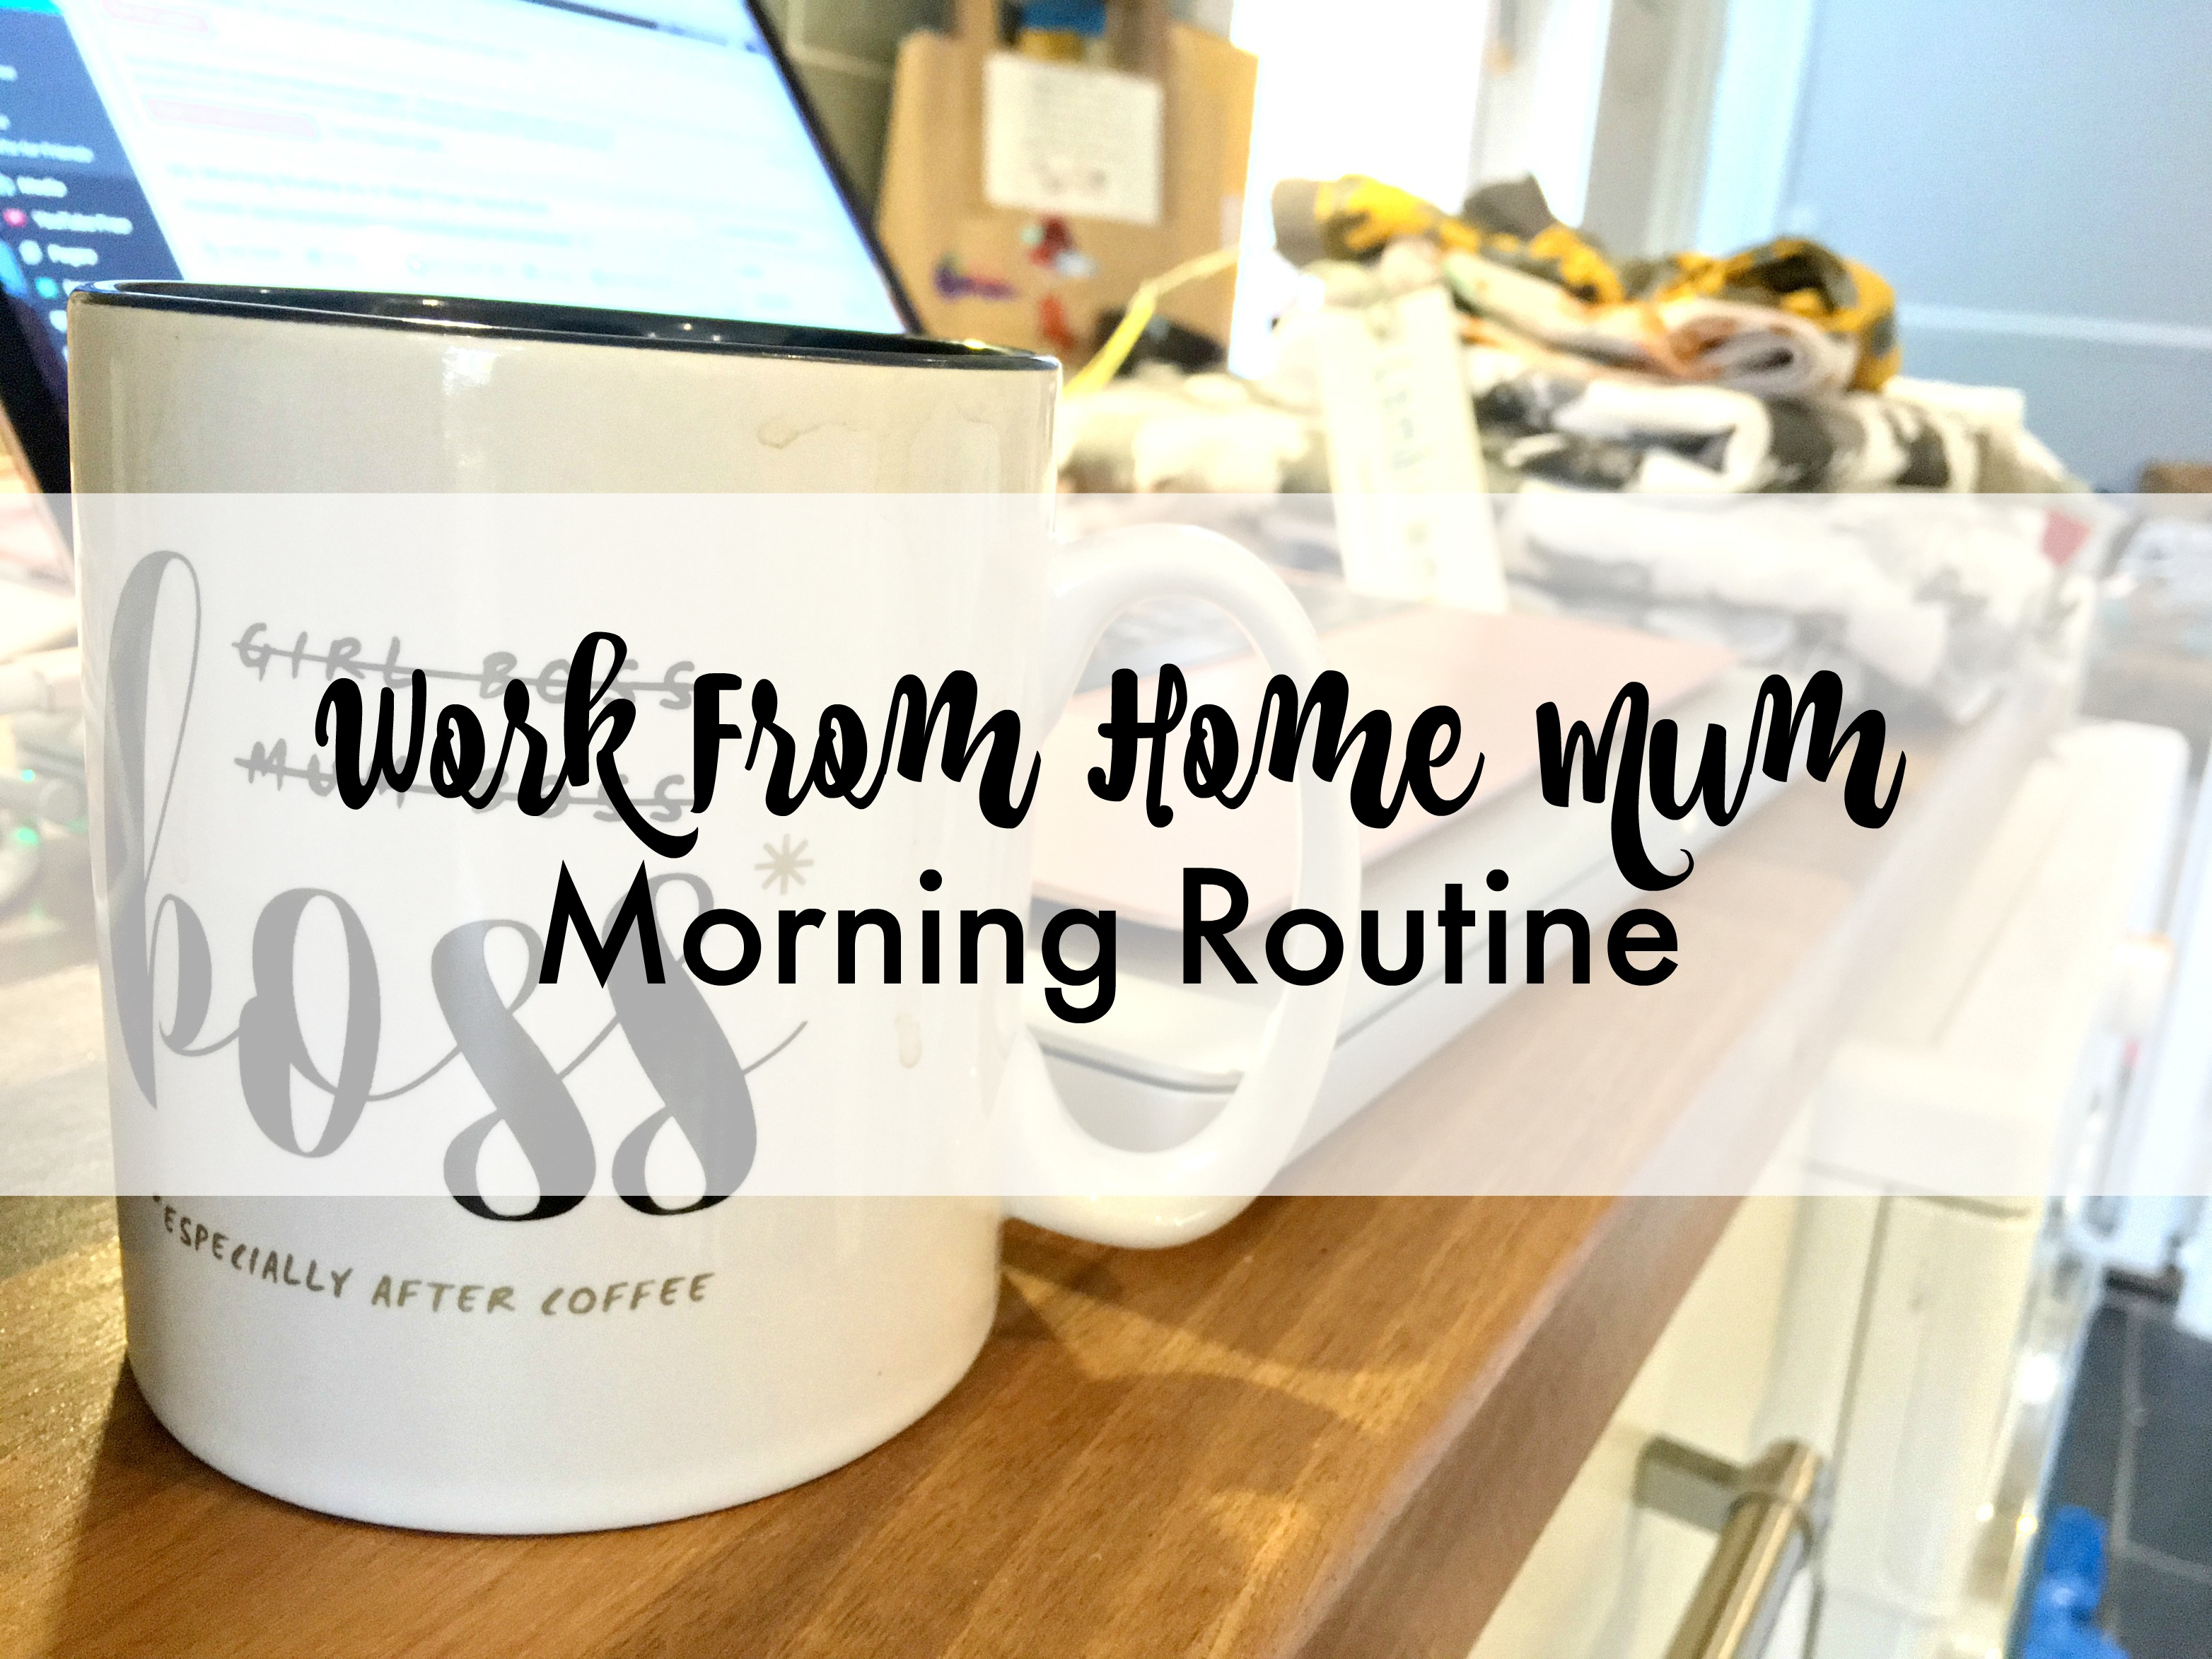 WORK FROM HOME MUM title